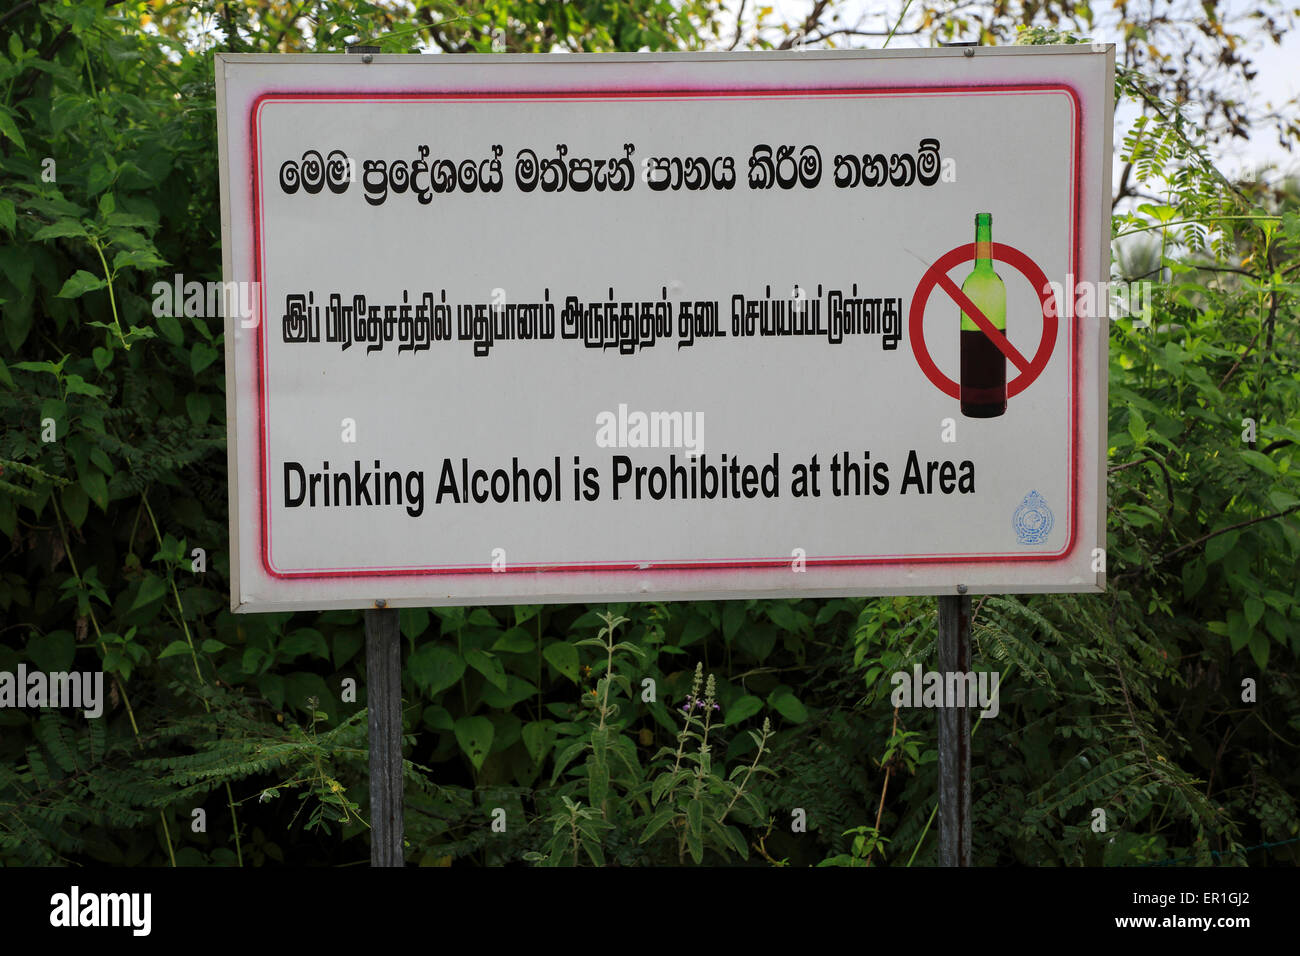 Information sign saying that Drinking Alcohol is Not Permitted, Pasikudah Bay, Eastern Province, Sri Lanka, Asia - Stock Image